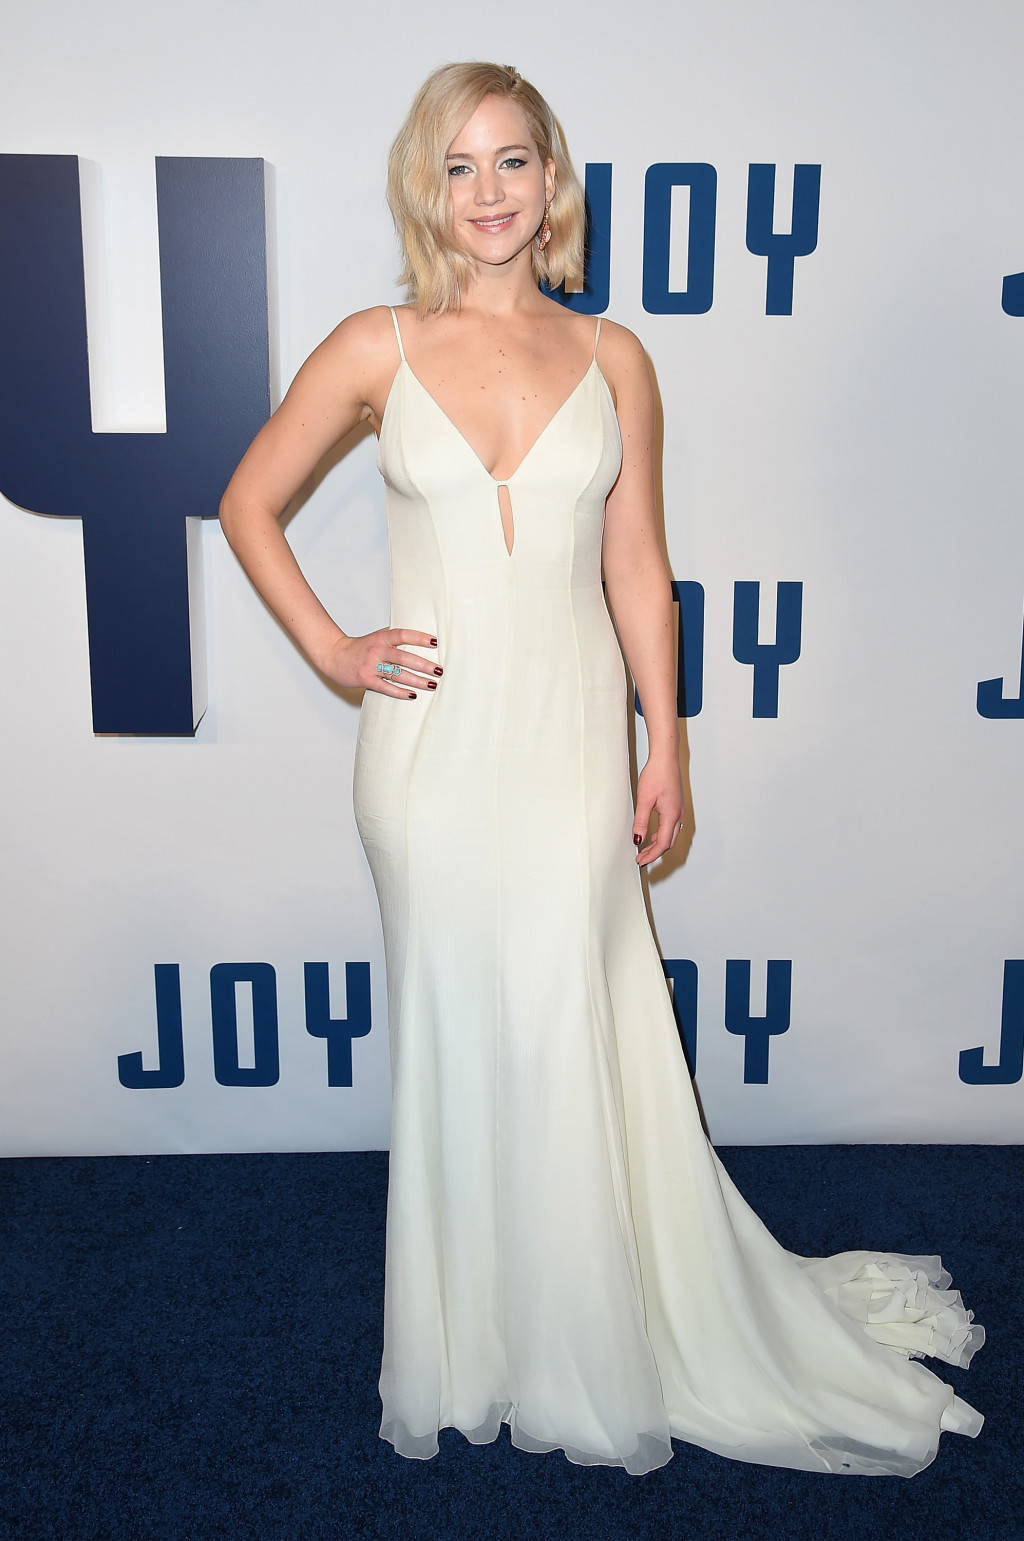 J.Law Wows in White at the 'Joy' Premiere